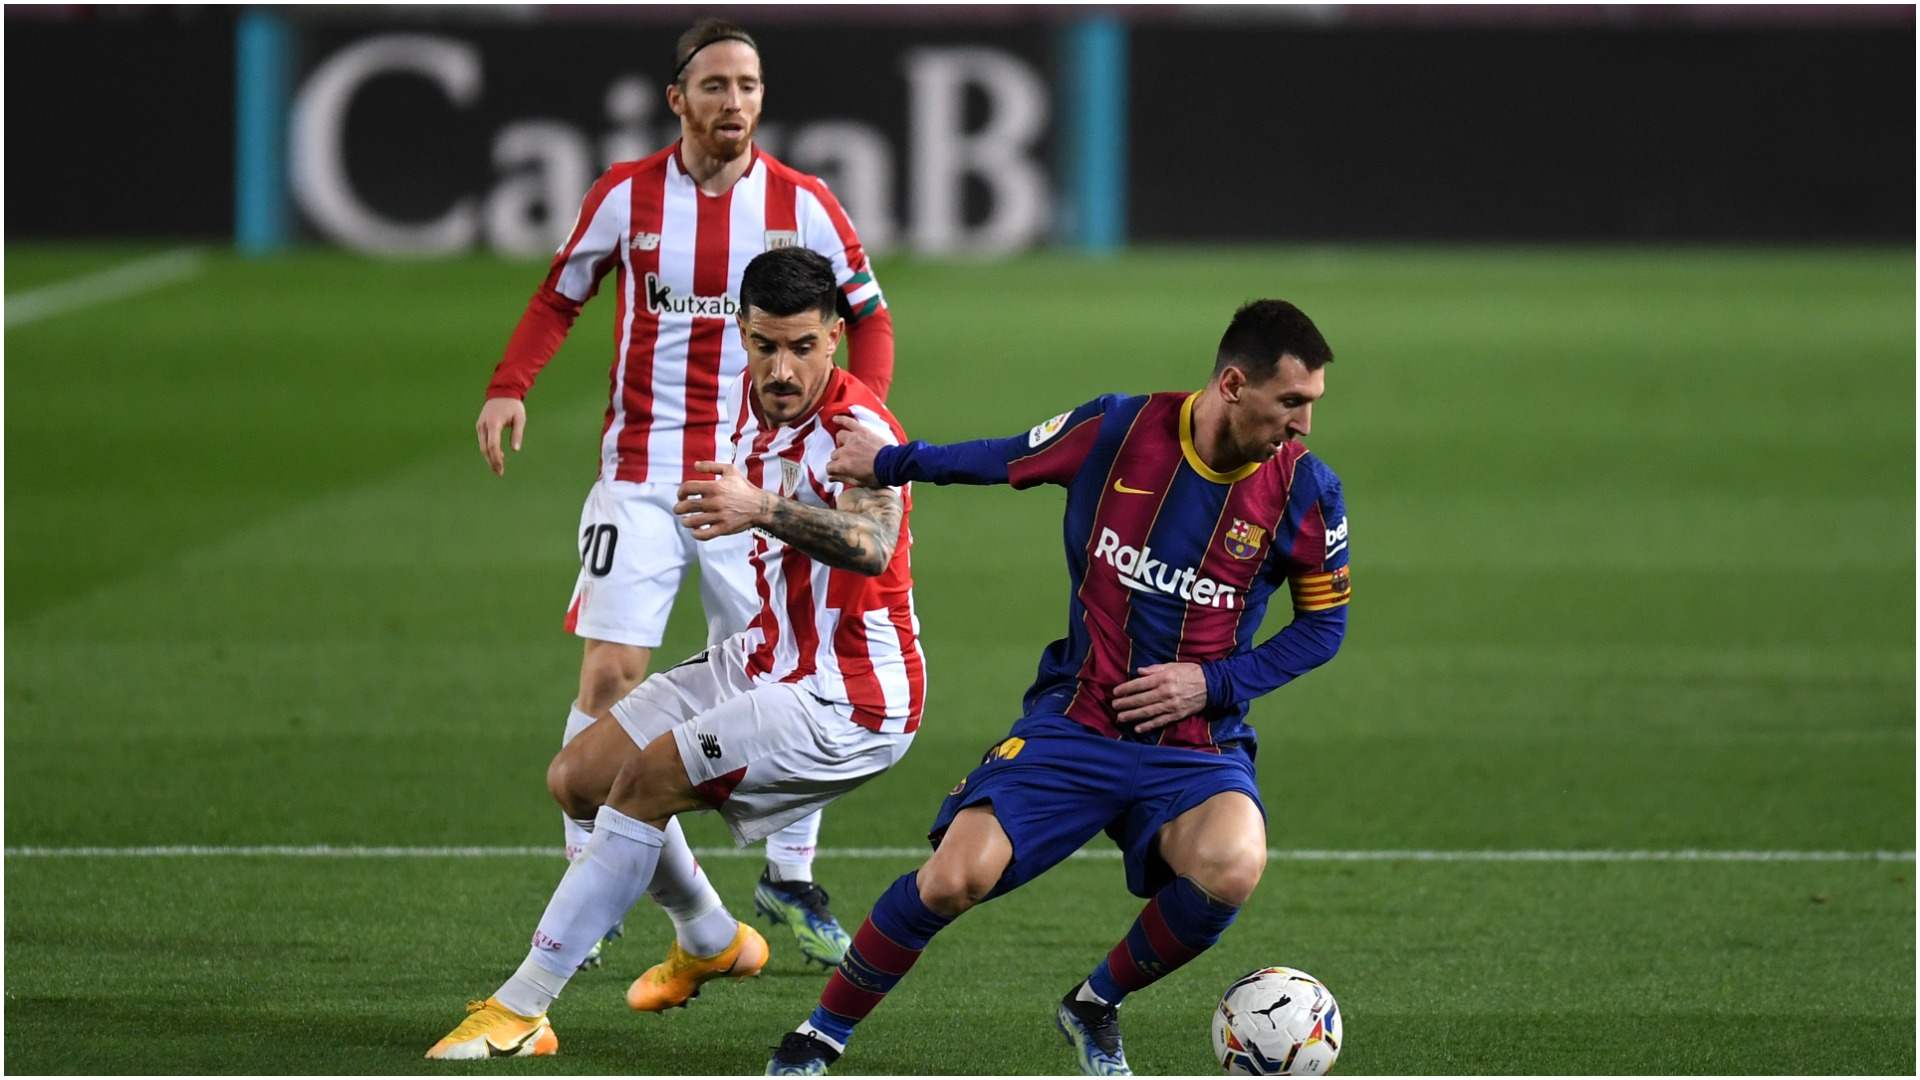 Barcelona can't aspire to much without Messi, warns Koeman